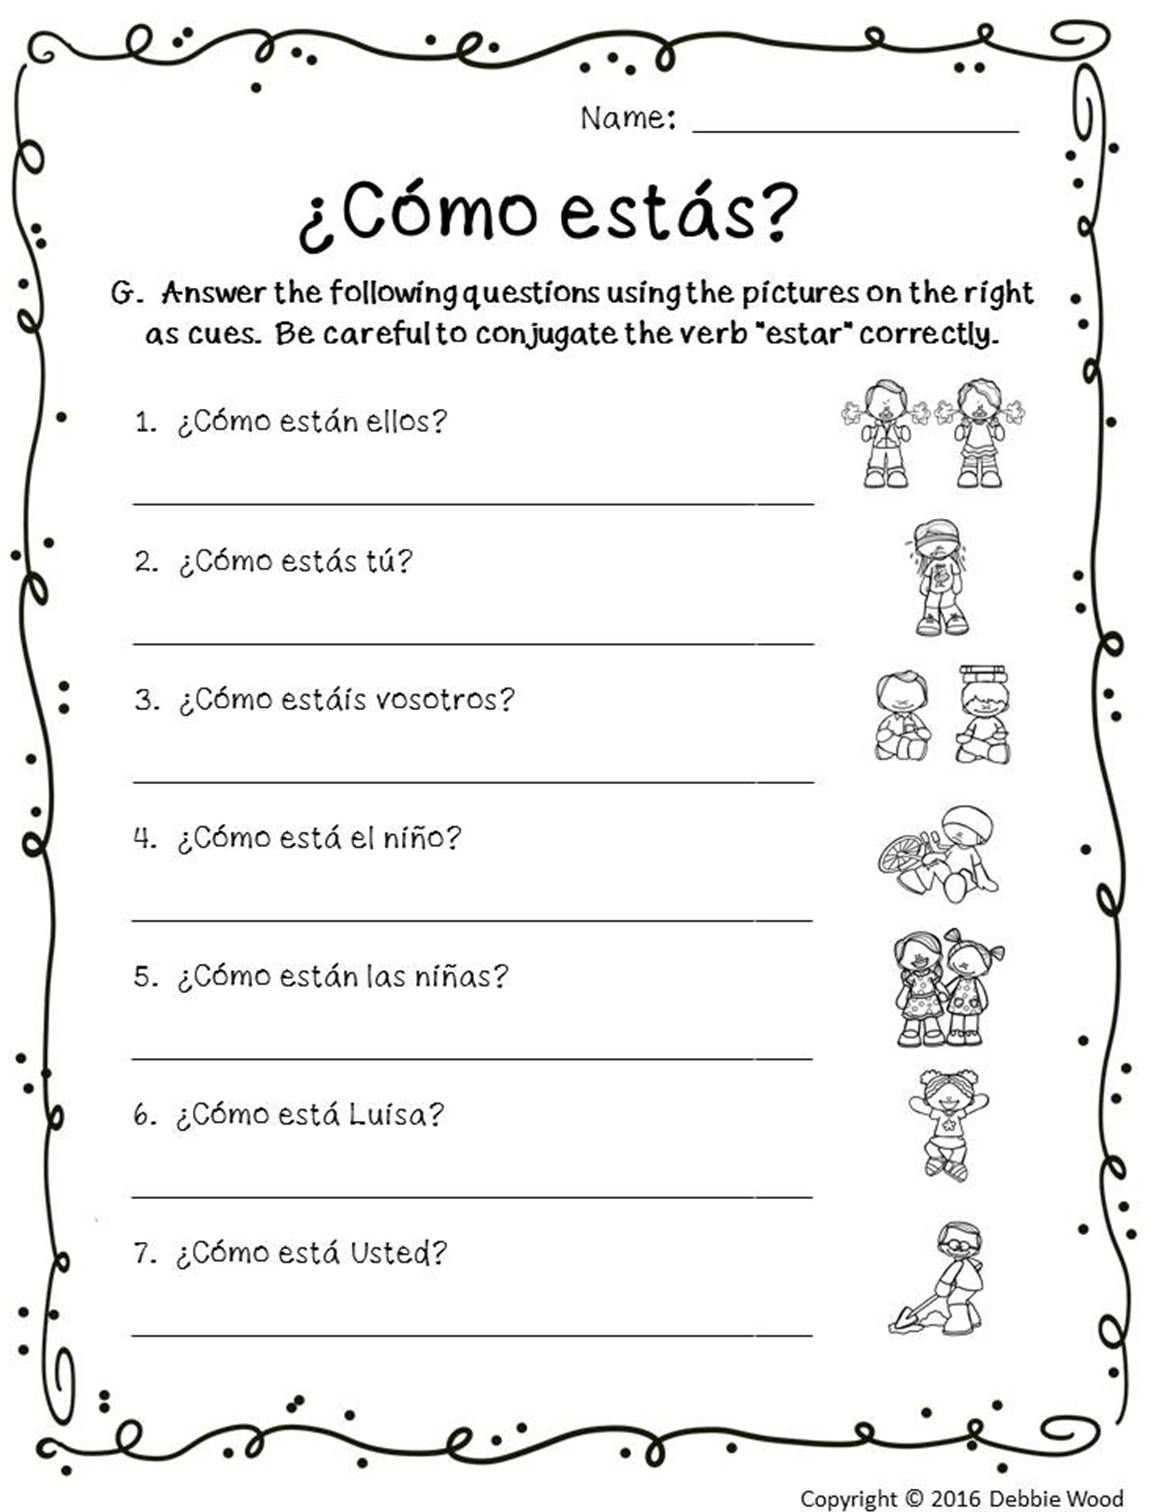 Gustar worksheet answers